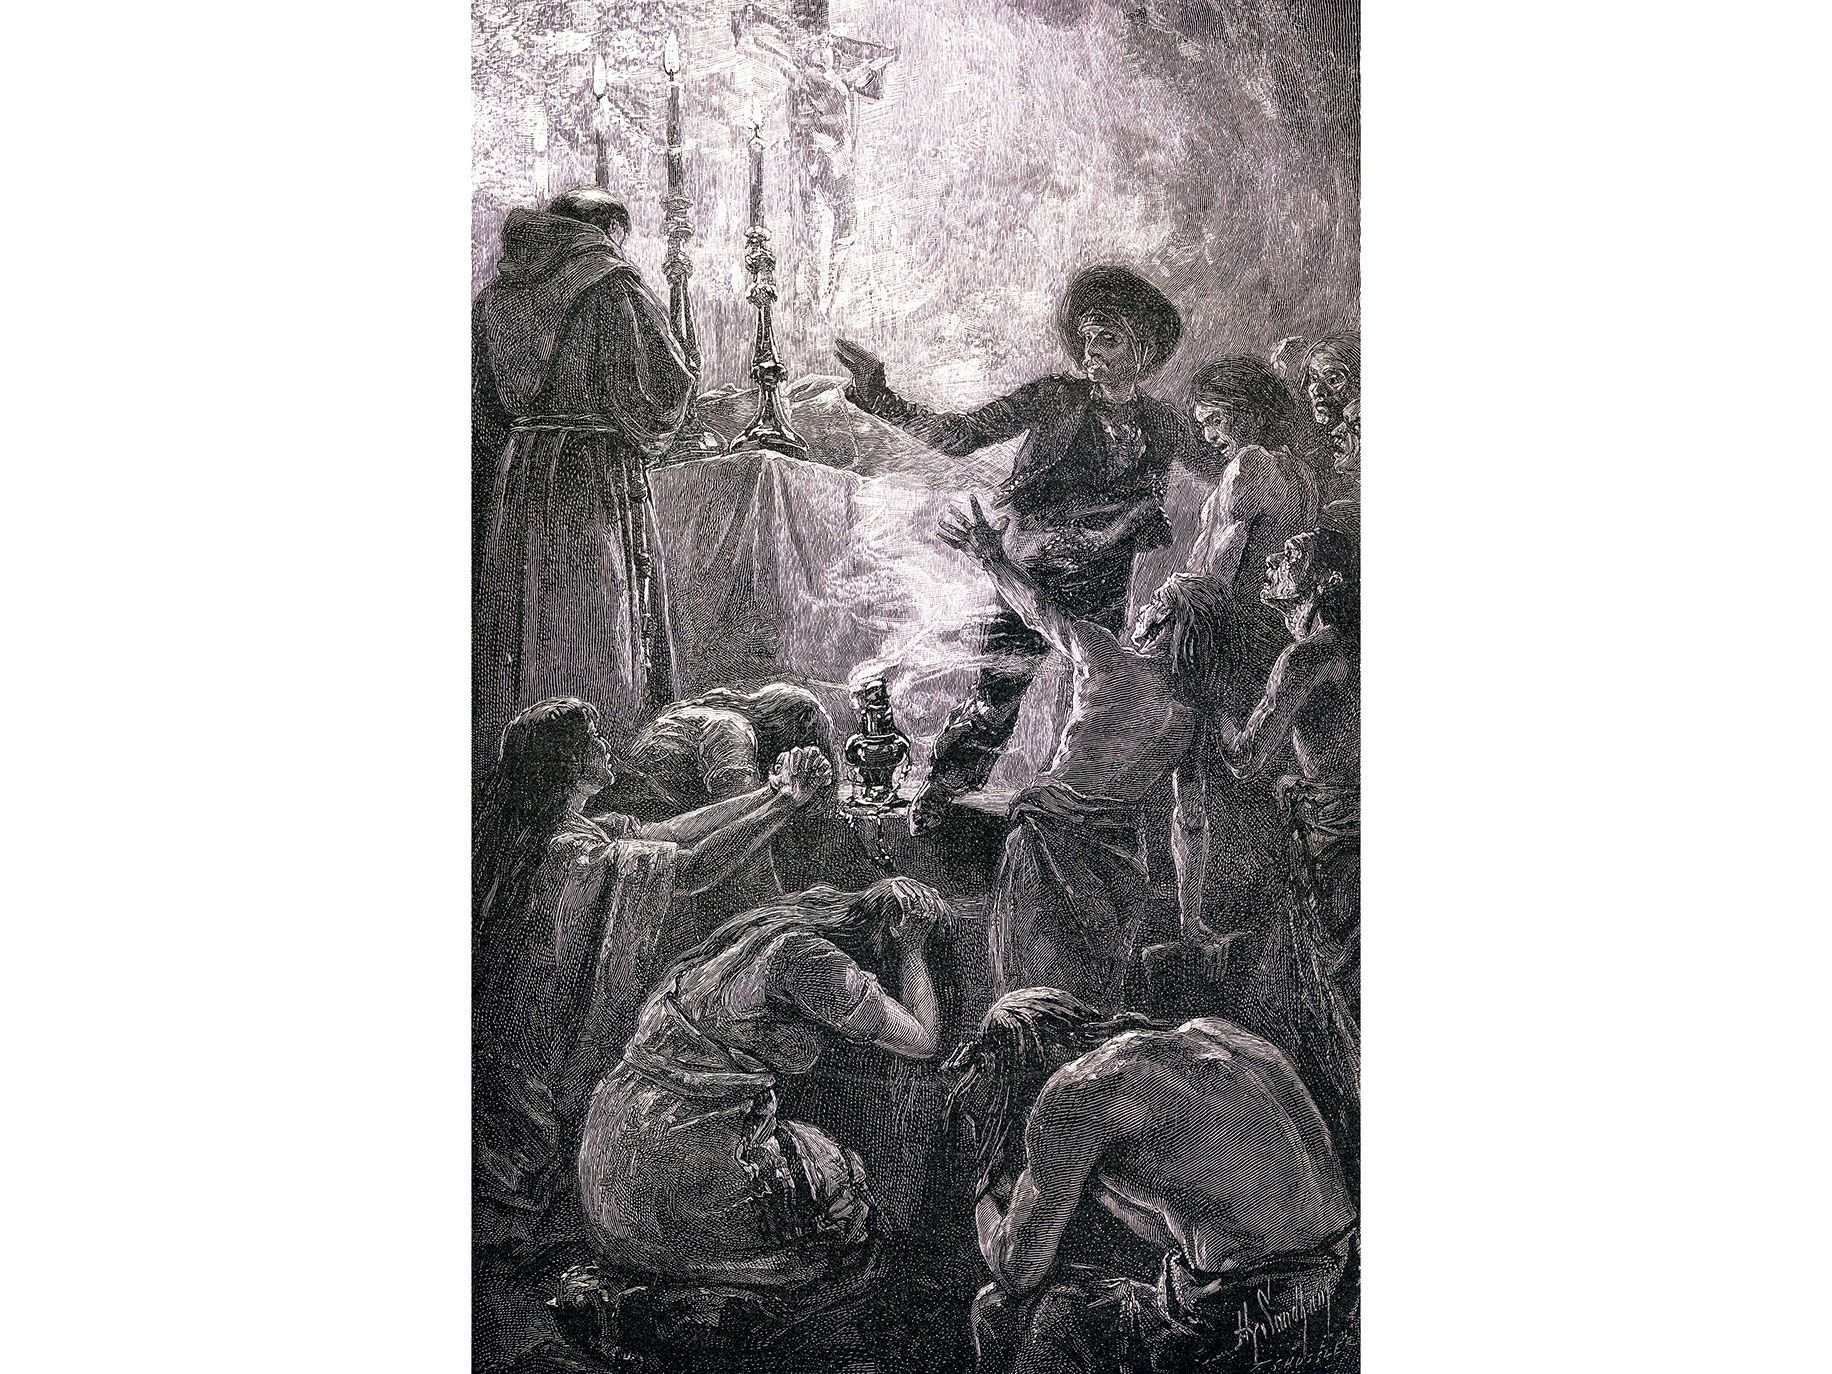 A fanciful illustration of Junipero Serra's funeral in Carmel-by-the-Sea from a 19th century magazine, The Century Illustrated Monthly. Serra died in 1784 and was buried in Carmel.